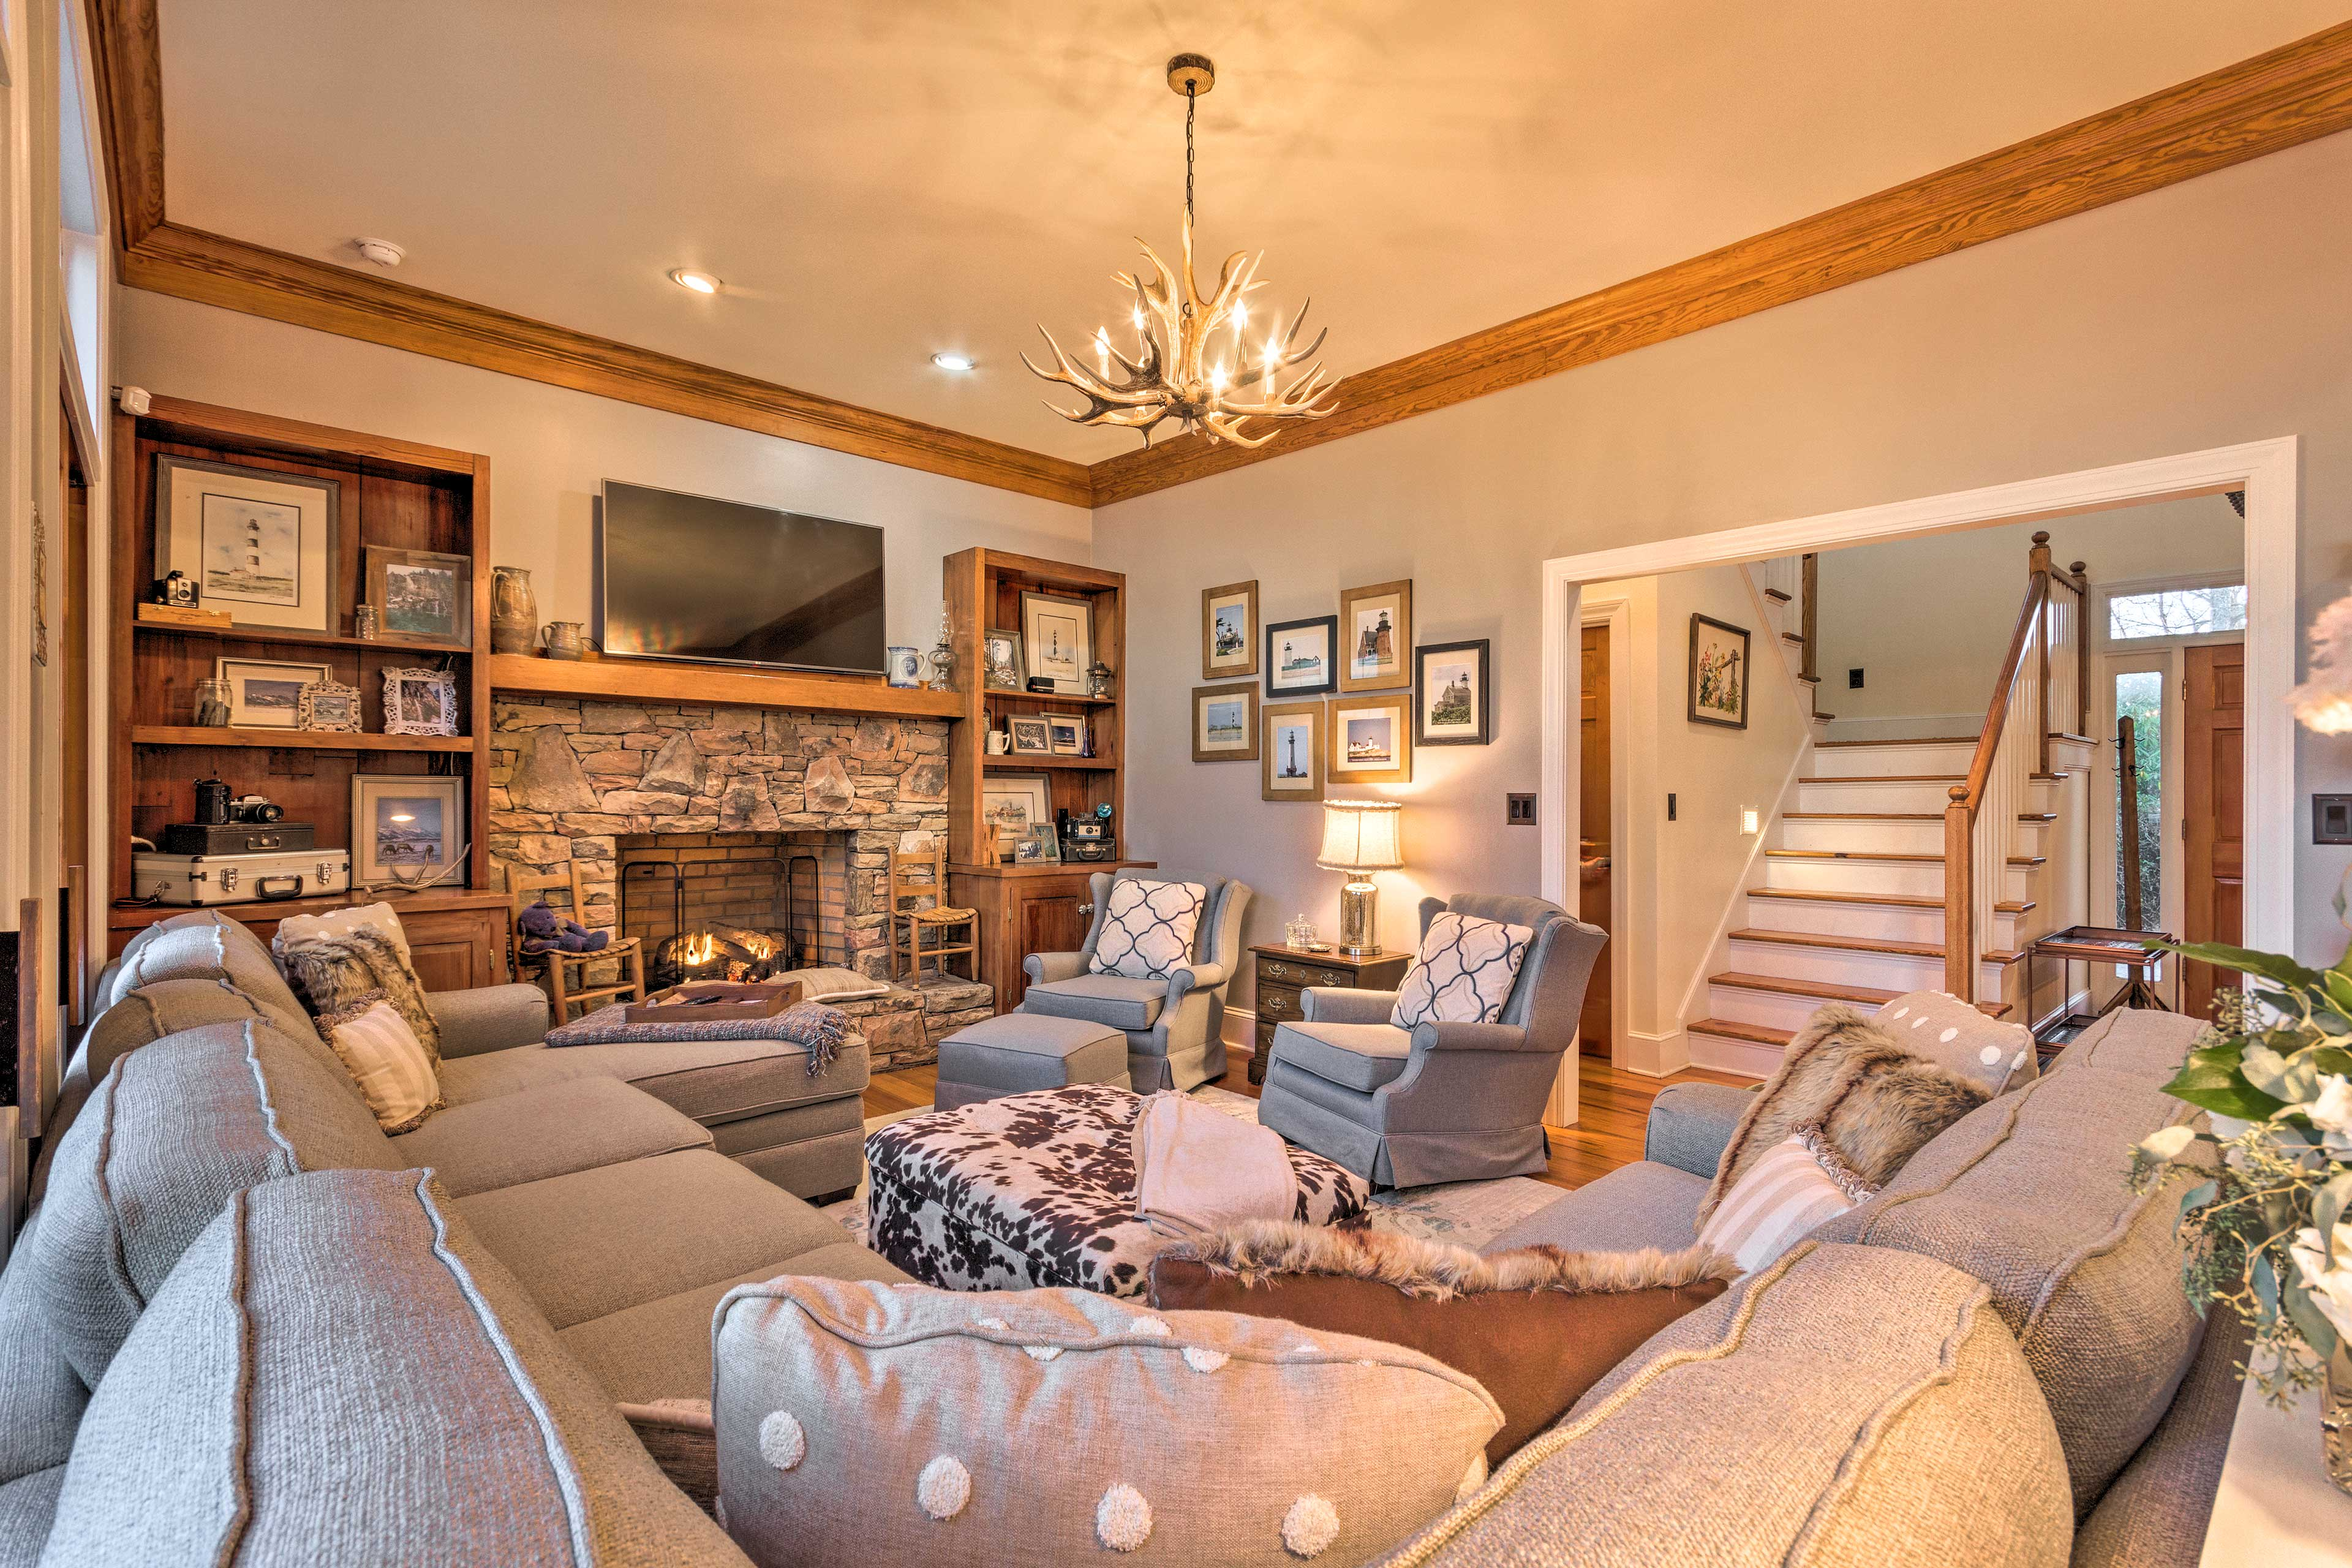 Boone Vacation Rental   5BR   4.5BA   3,900 Sq Ft   Steps Required to Access